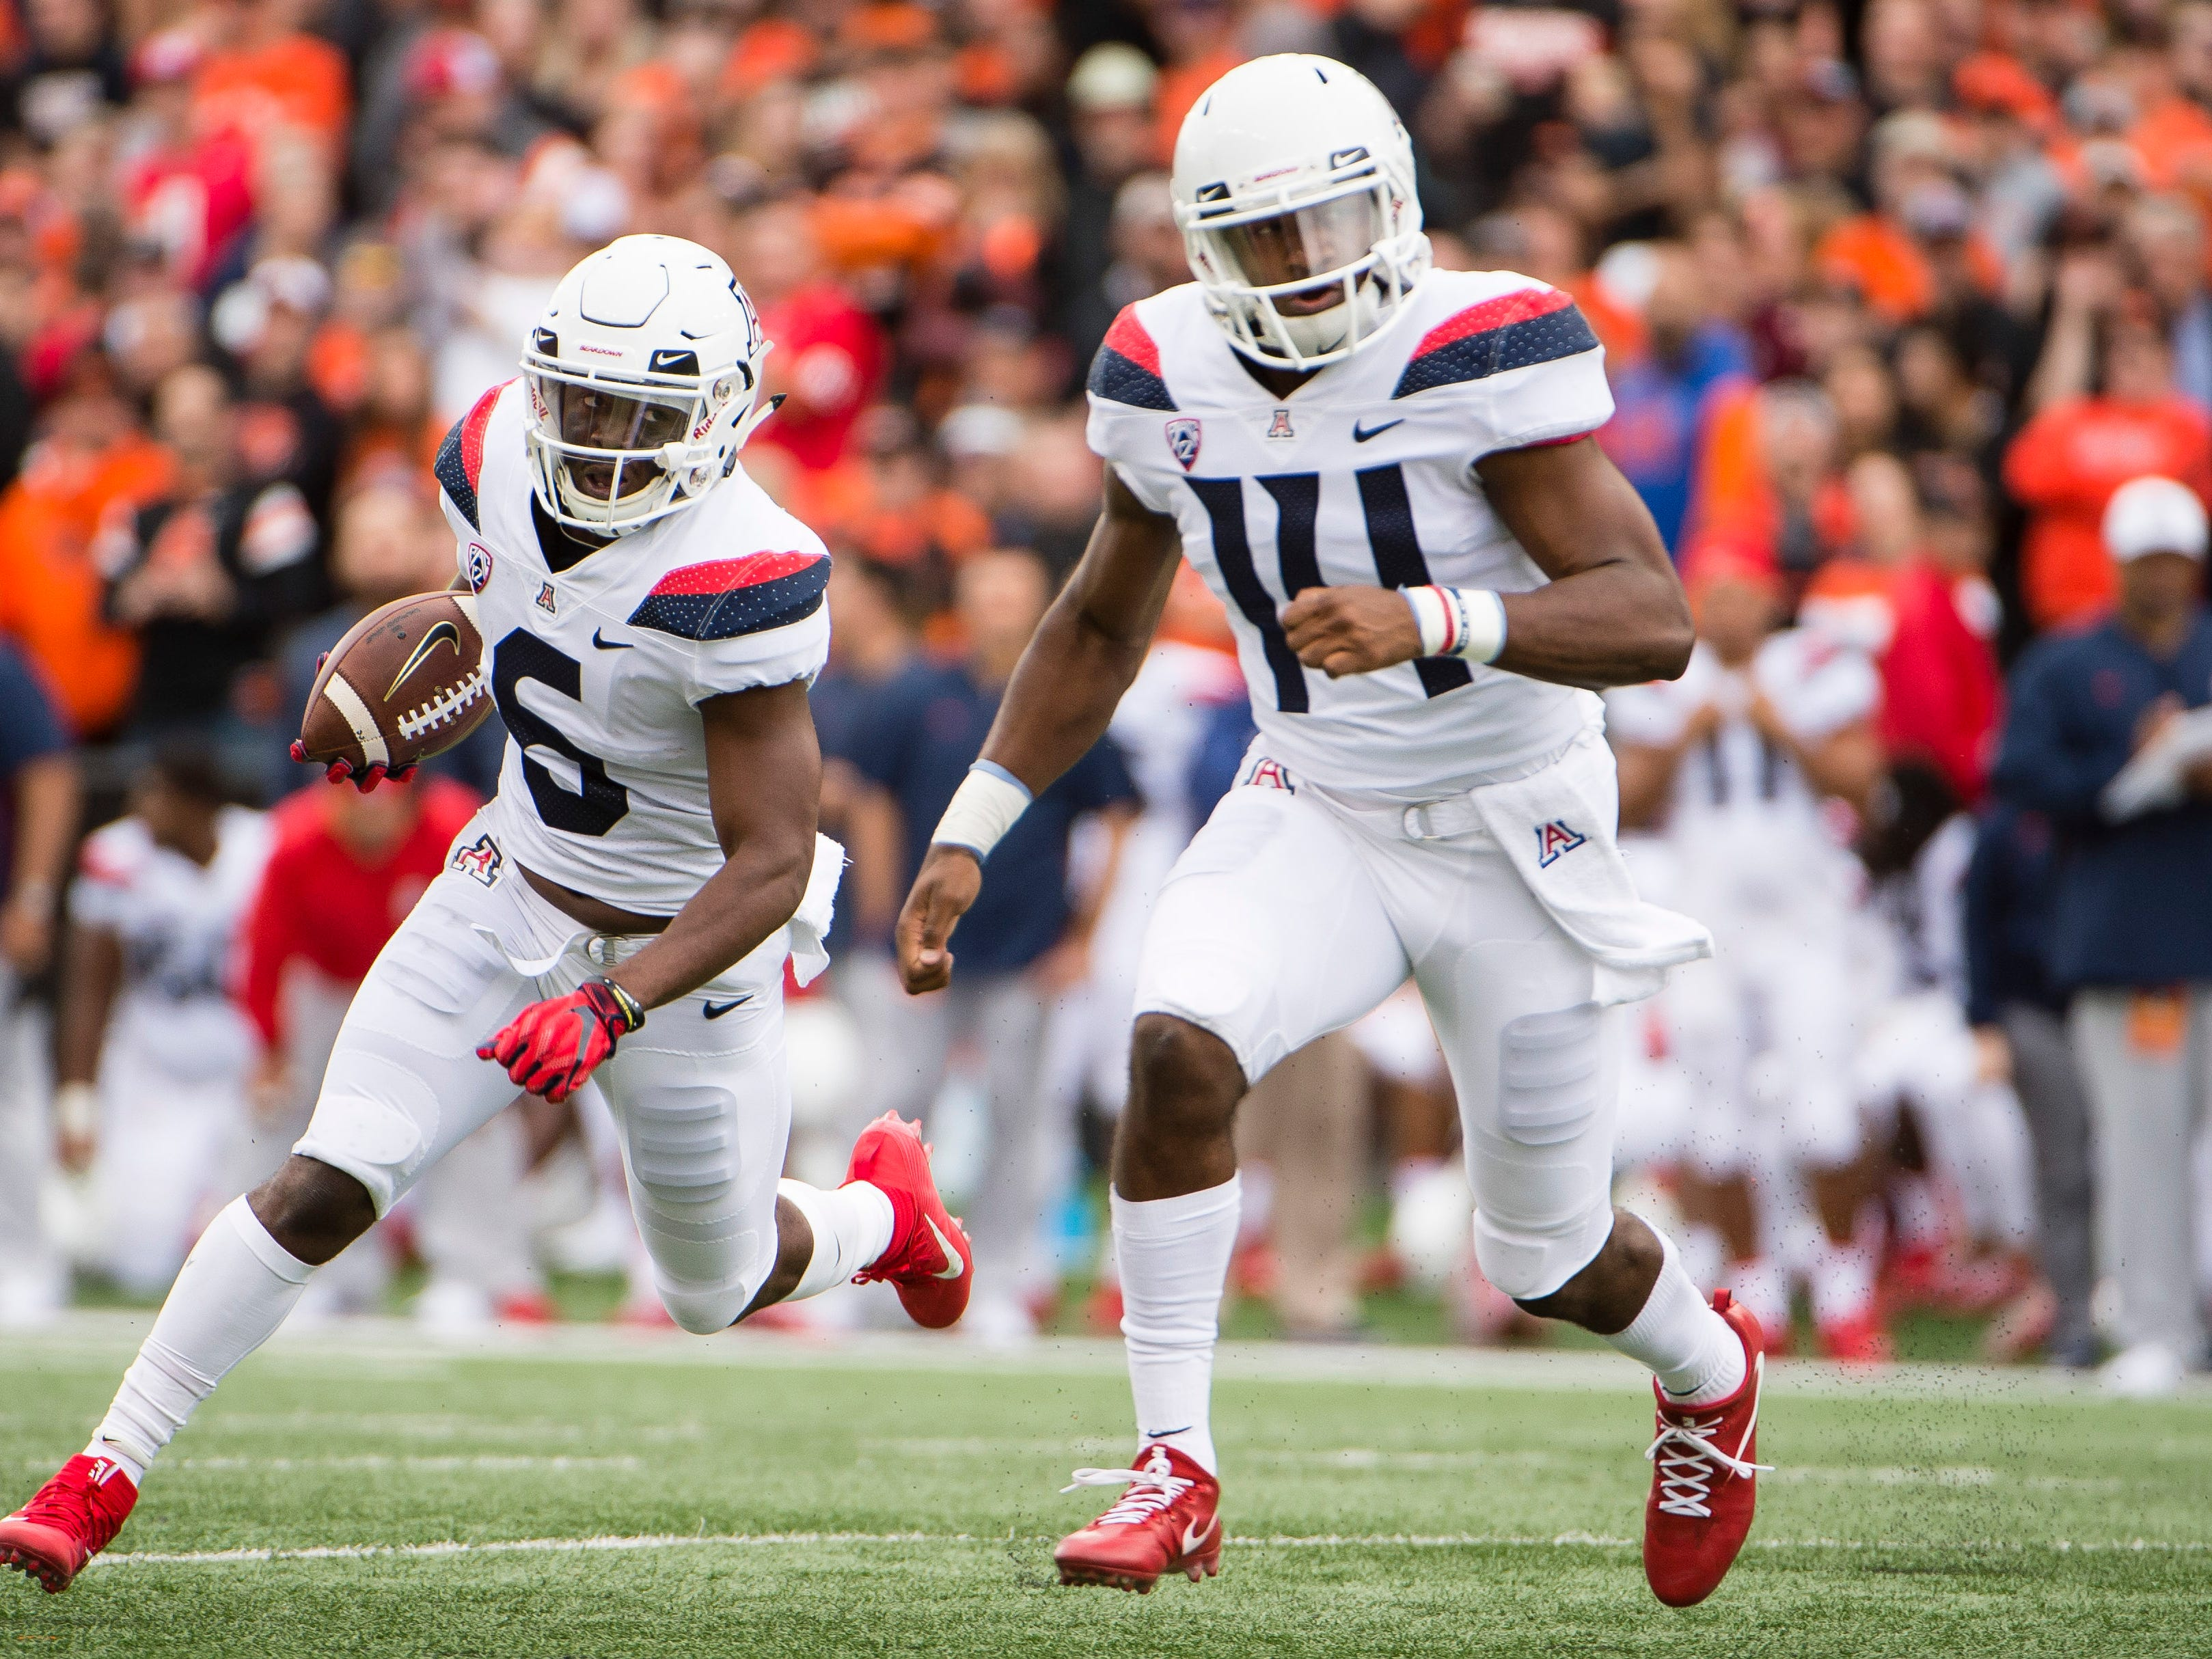 Sep 22, 2018; Corvallis, OR, USA; Arizona Wildcats wide receiver Shun Brown (6) runs for a touchdown during the first half as he is led by quarterback Khalil Tate (14) against the Oregon State Beavers at Reser Stadium.